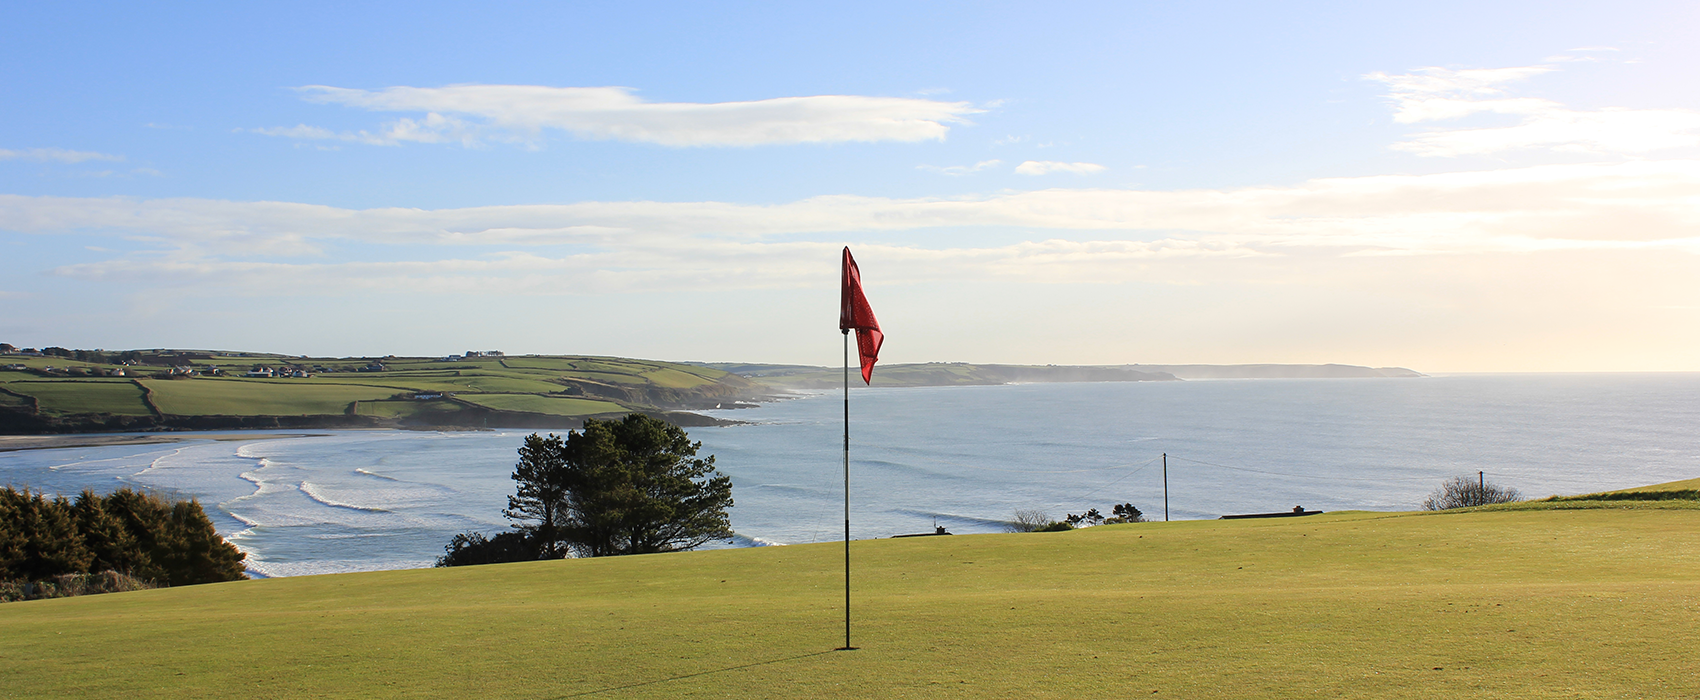 Overview of golf course named Dunmore Golf Club